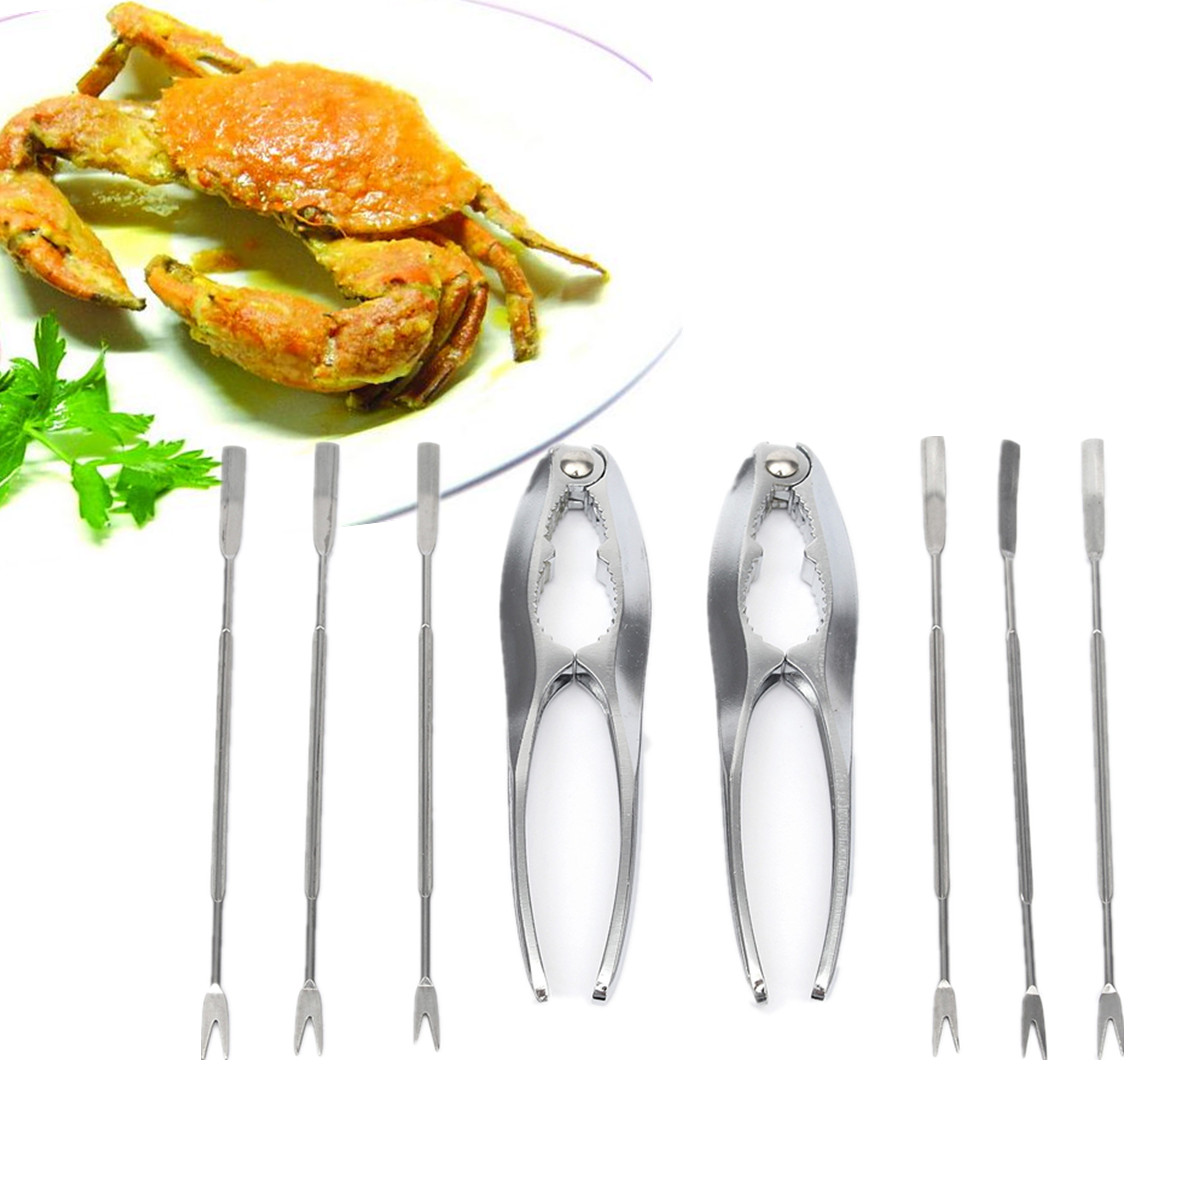 Popular Seafood Tool Set-Buy Cheap Seafood Tool Set lots from China Seafood Tool Set suppliers ...